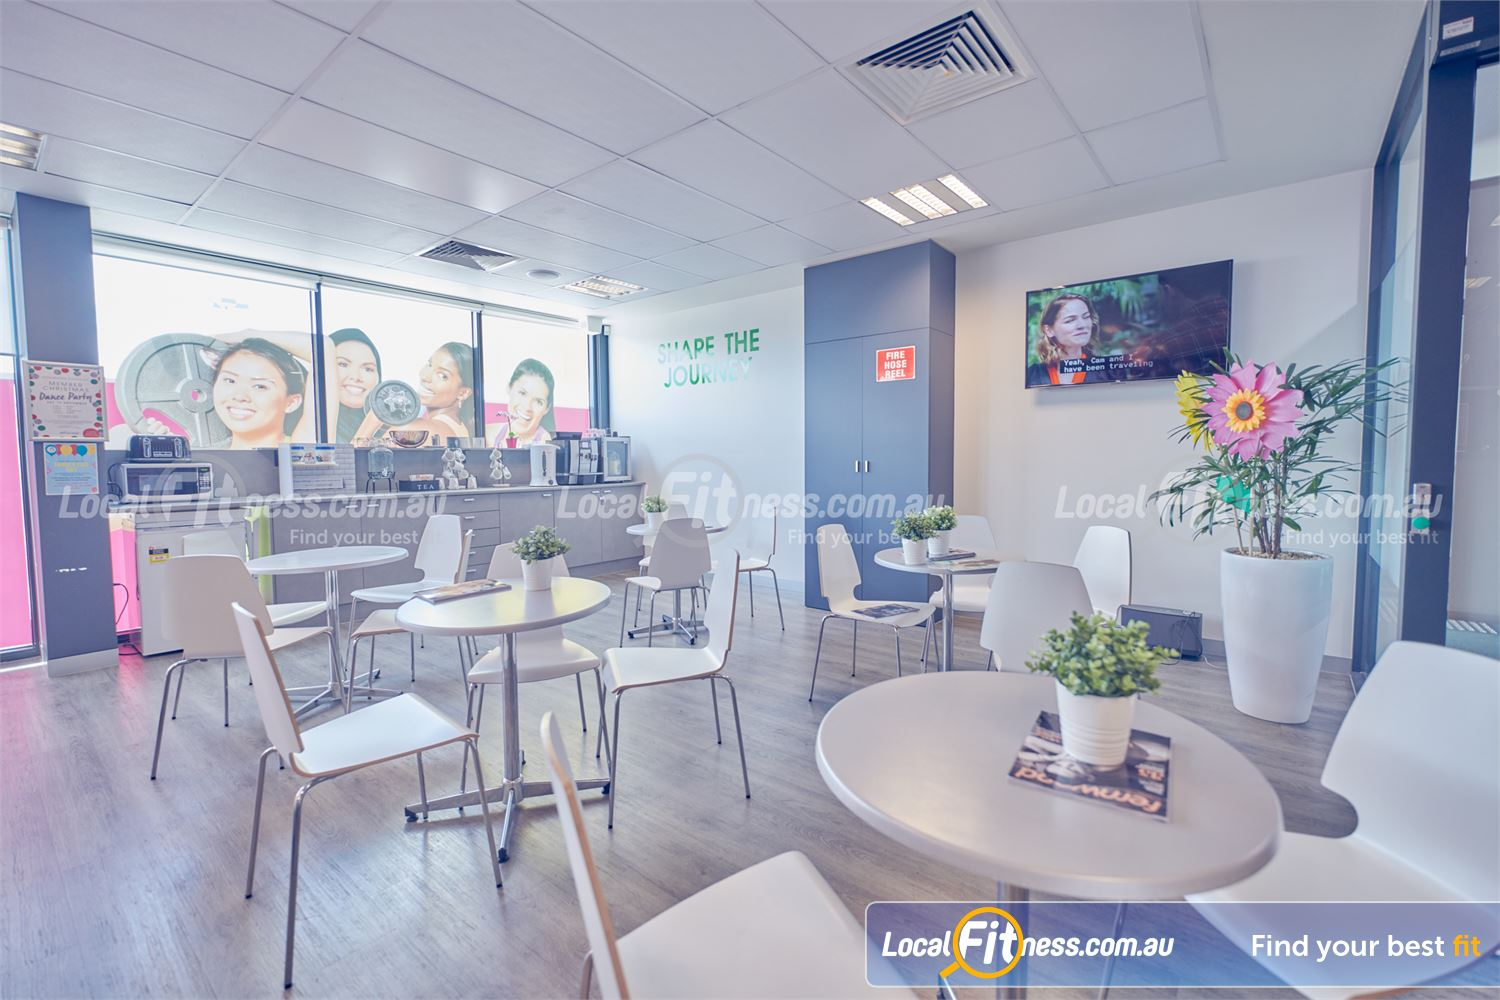 Fernwood Fitness Near Ravenhall Share the journey with us in our Fernwood Cairnlea members lounge.